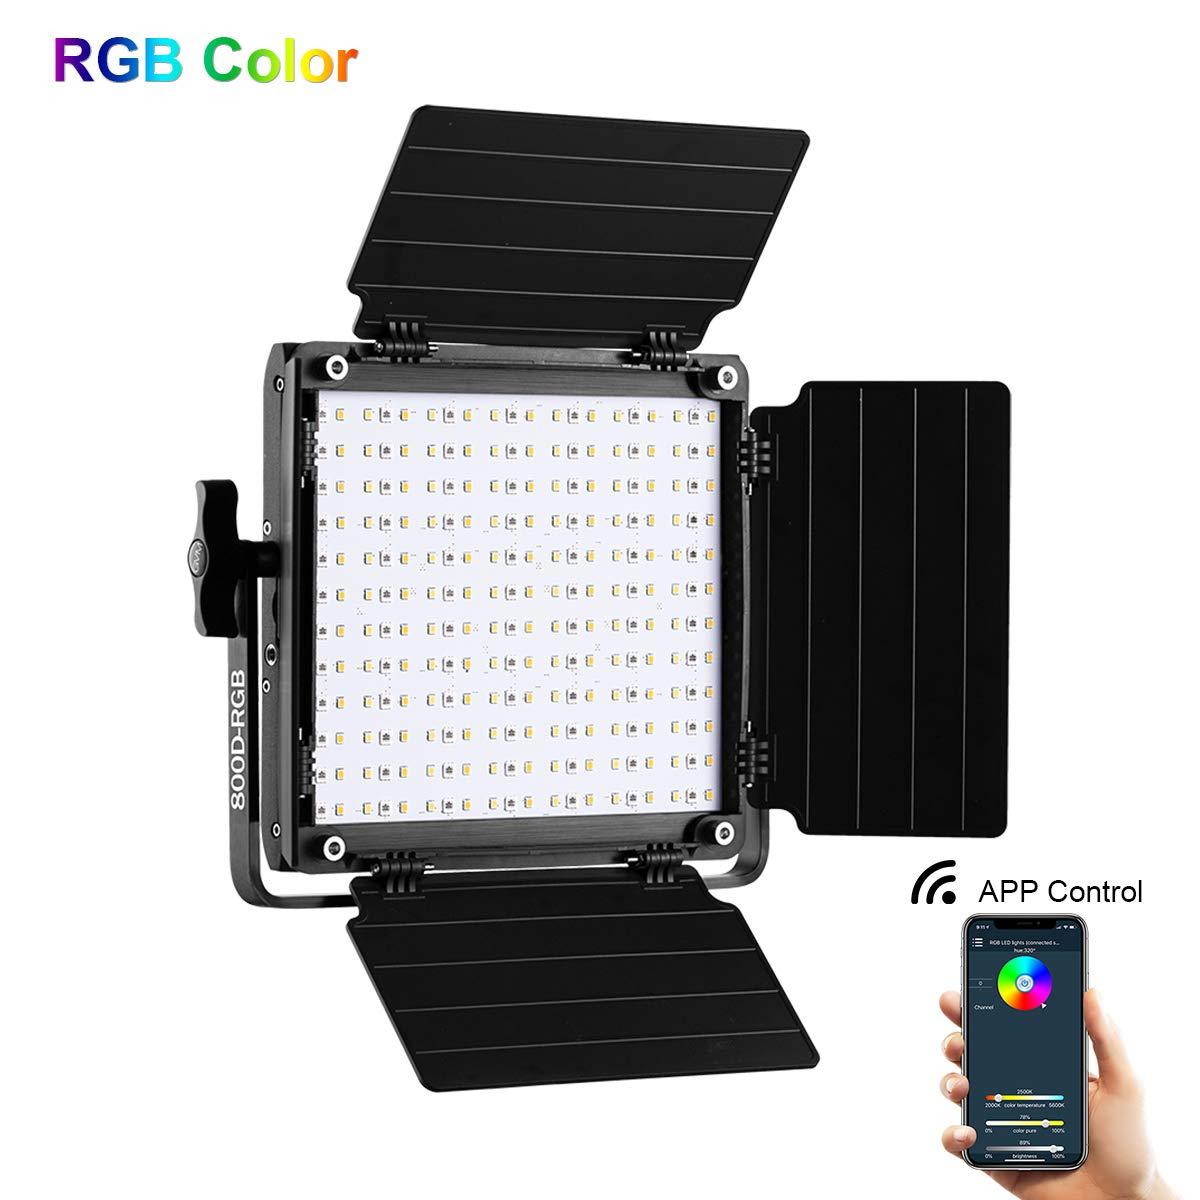 GVM RGB LED Video Light, 800D Studio Video Lights with APP Control, Video Light for YouTube Photography Lighting, Led Panel Video Light by GVM Great Video Maker